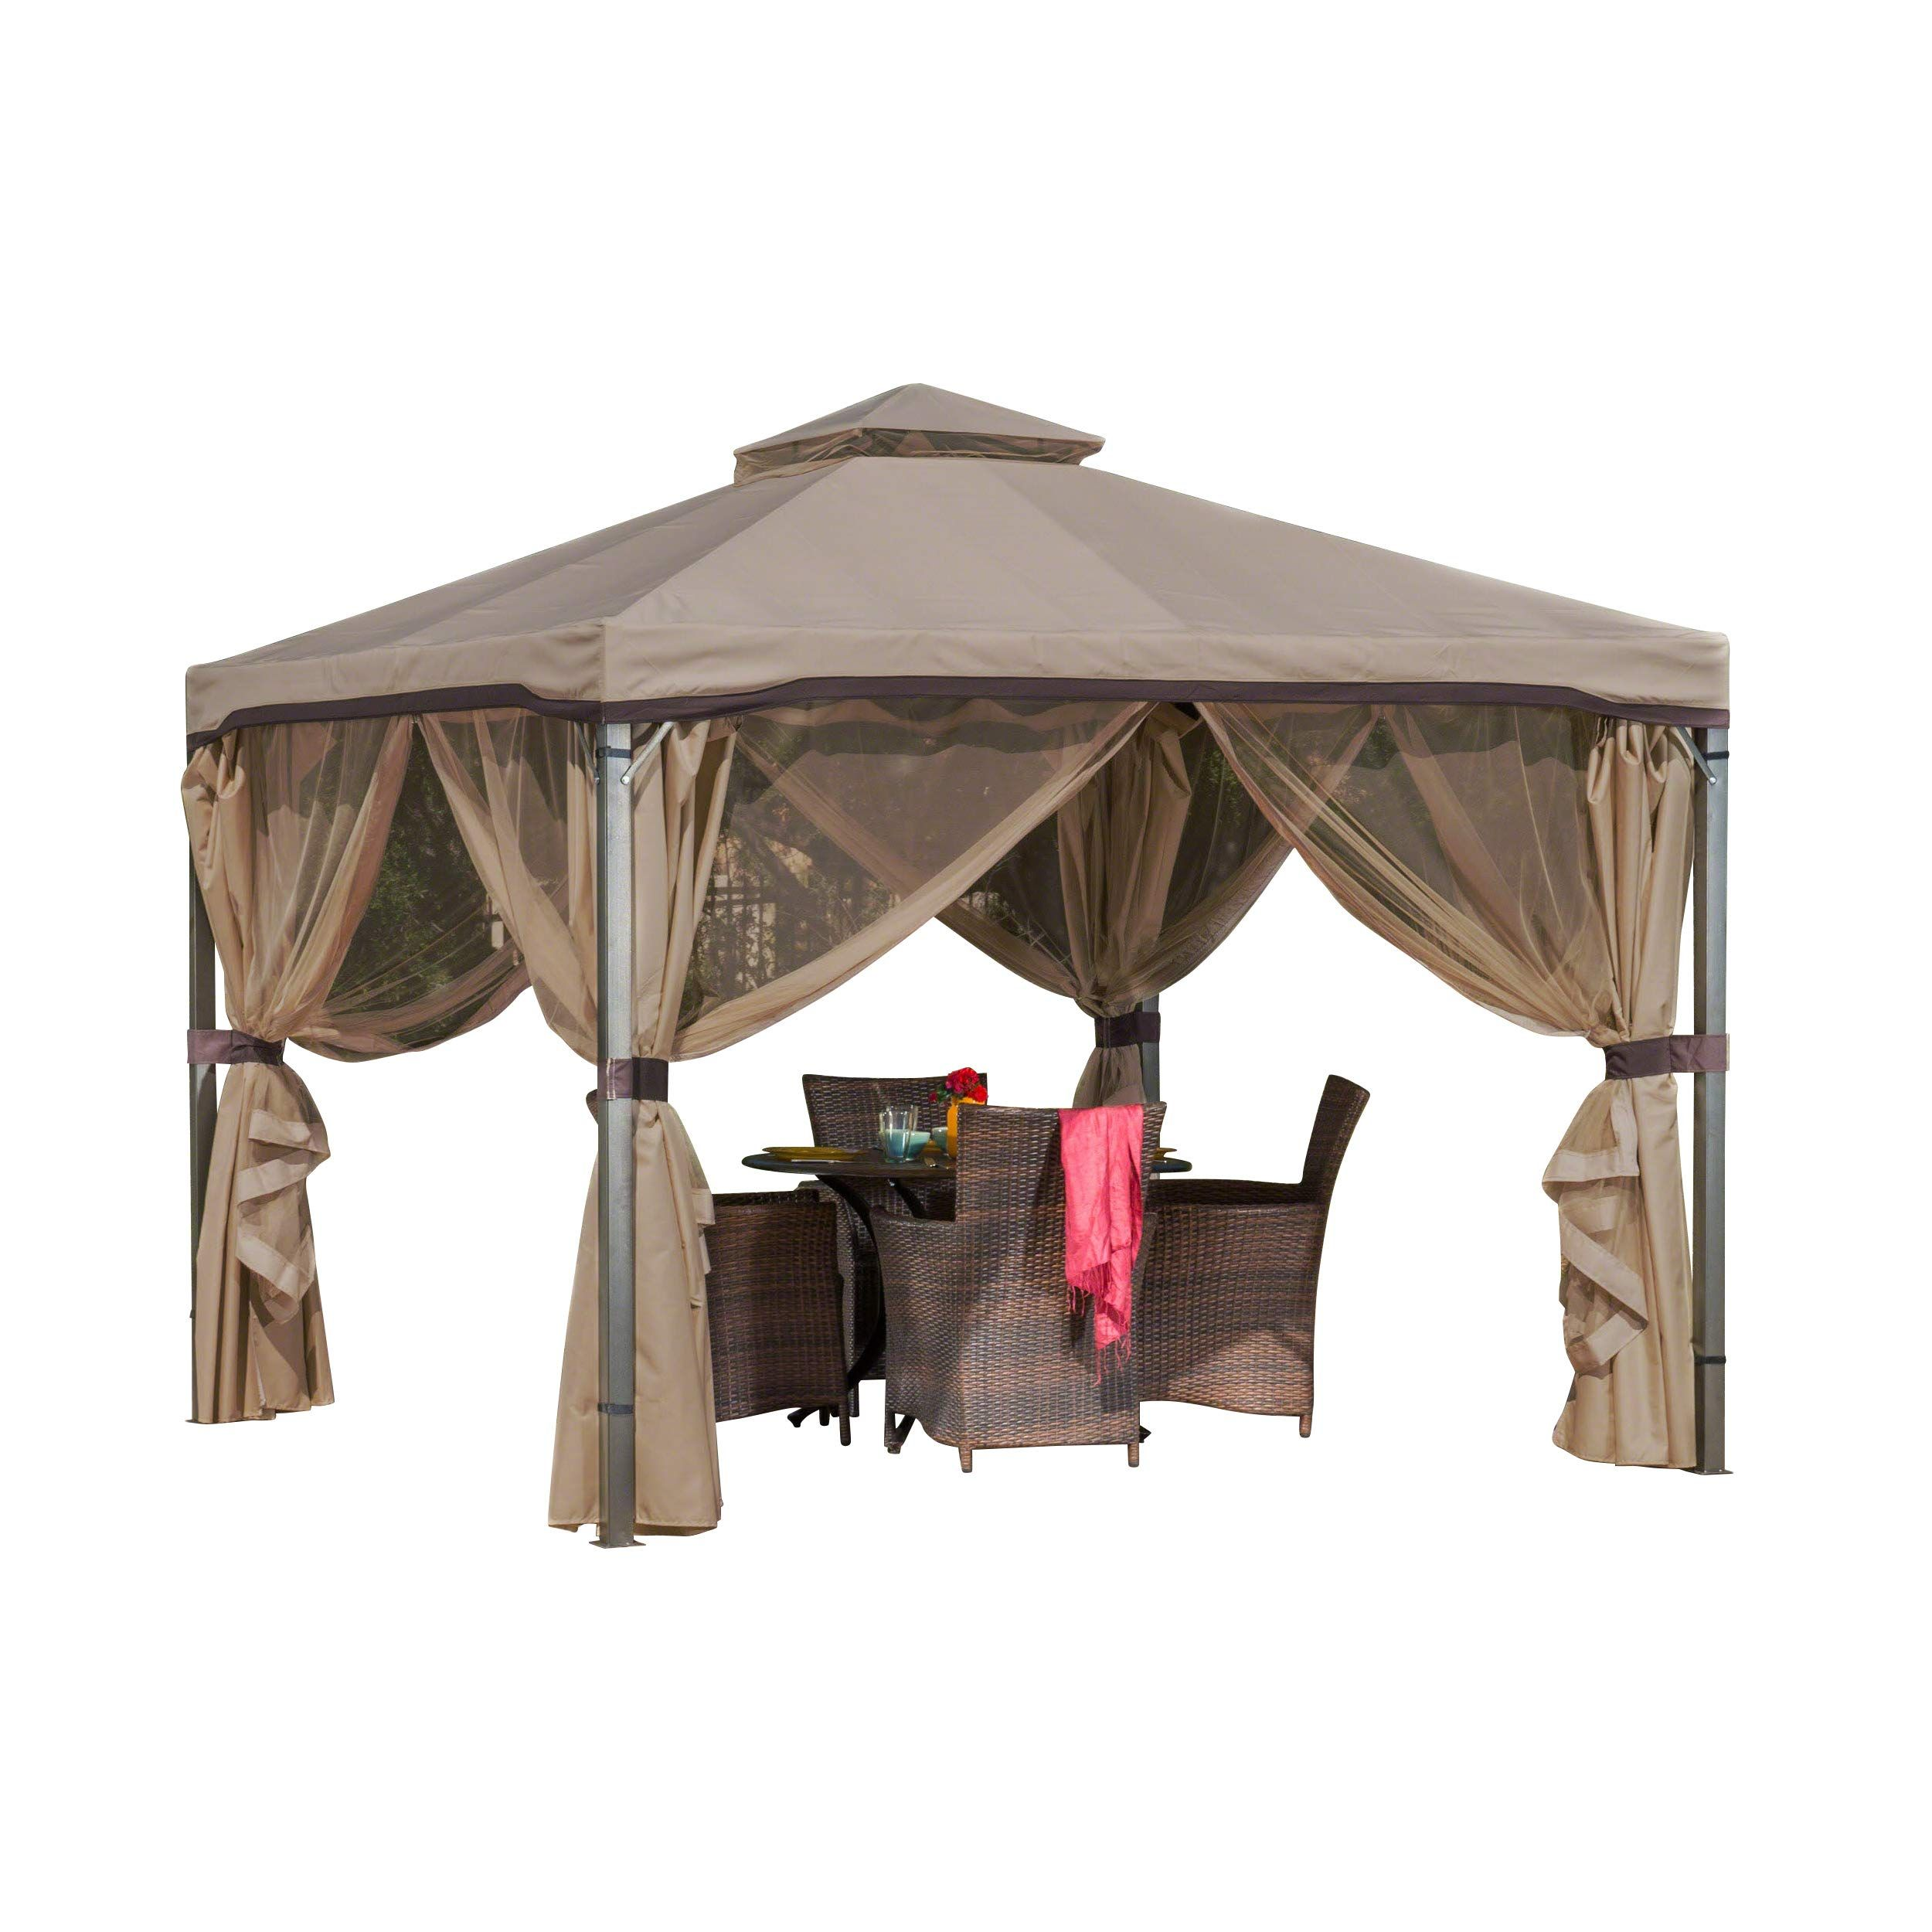 Christopher Knight Home Sonoma Canopy Gazebo 10 X 10 Feet Soft Top Garden Tent With Mosquito Netting And Shade Cur Outdoor Canopy Gazebo Patio Curtains Gazebo